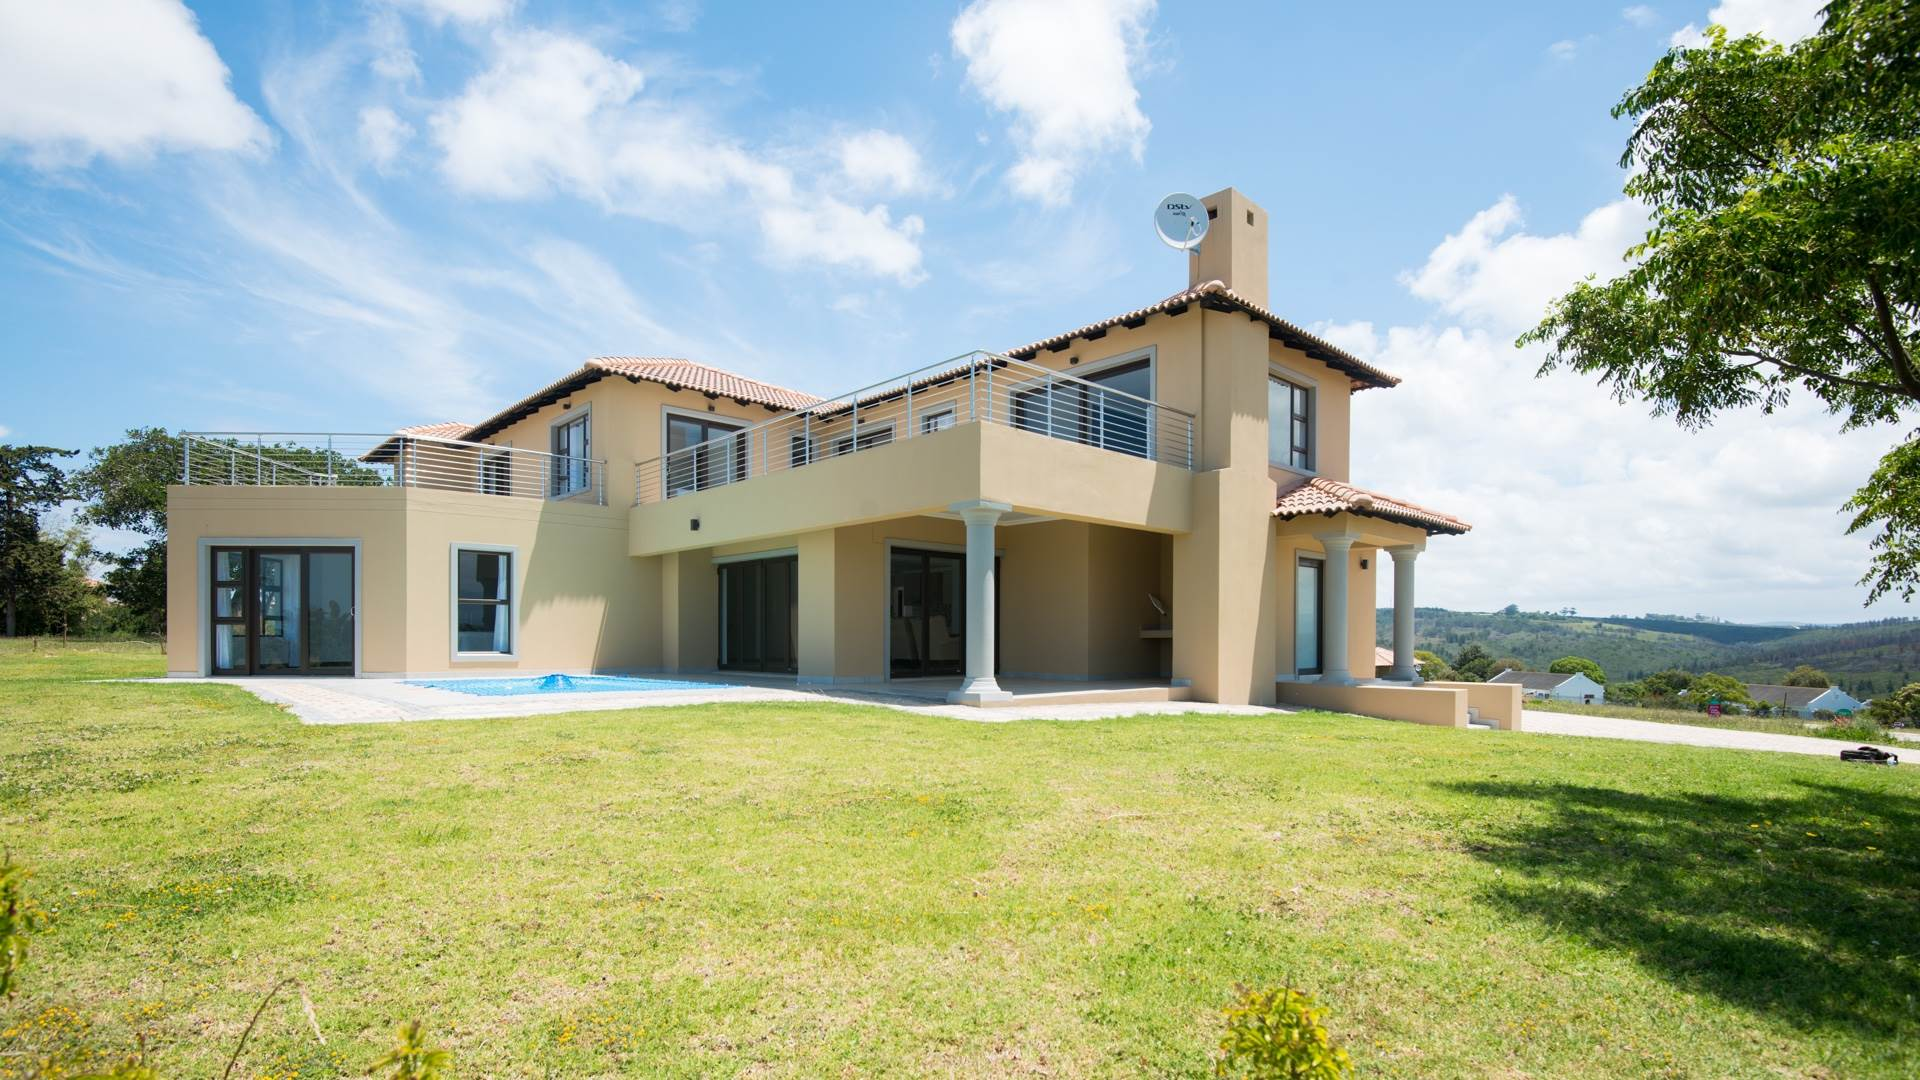 4 BedroomHouse For Sale In Plettenberg Bay